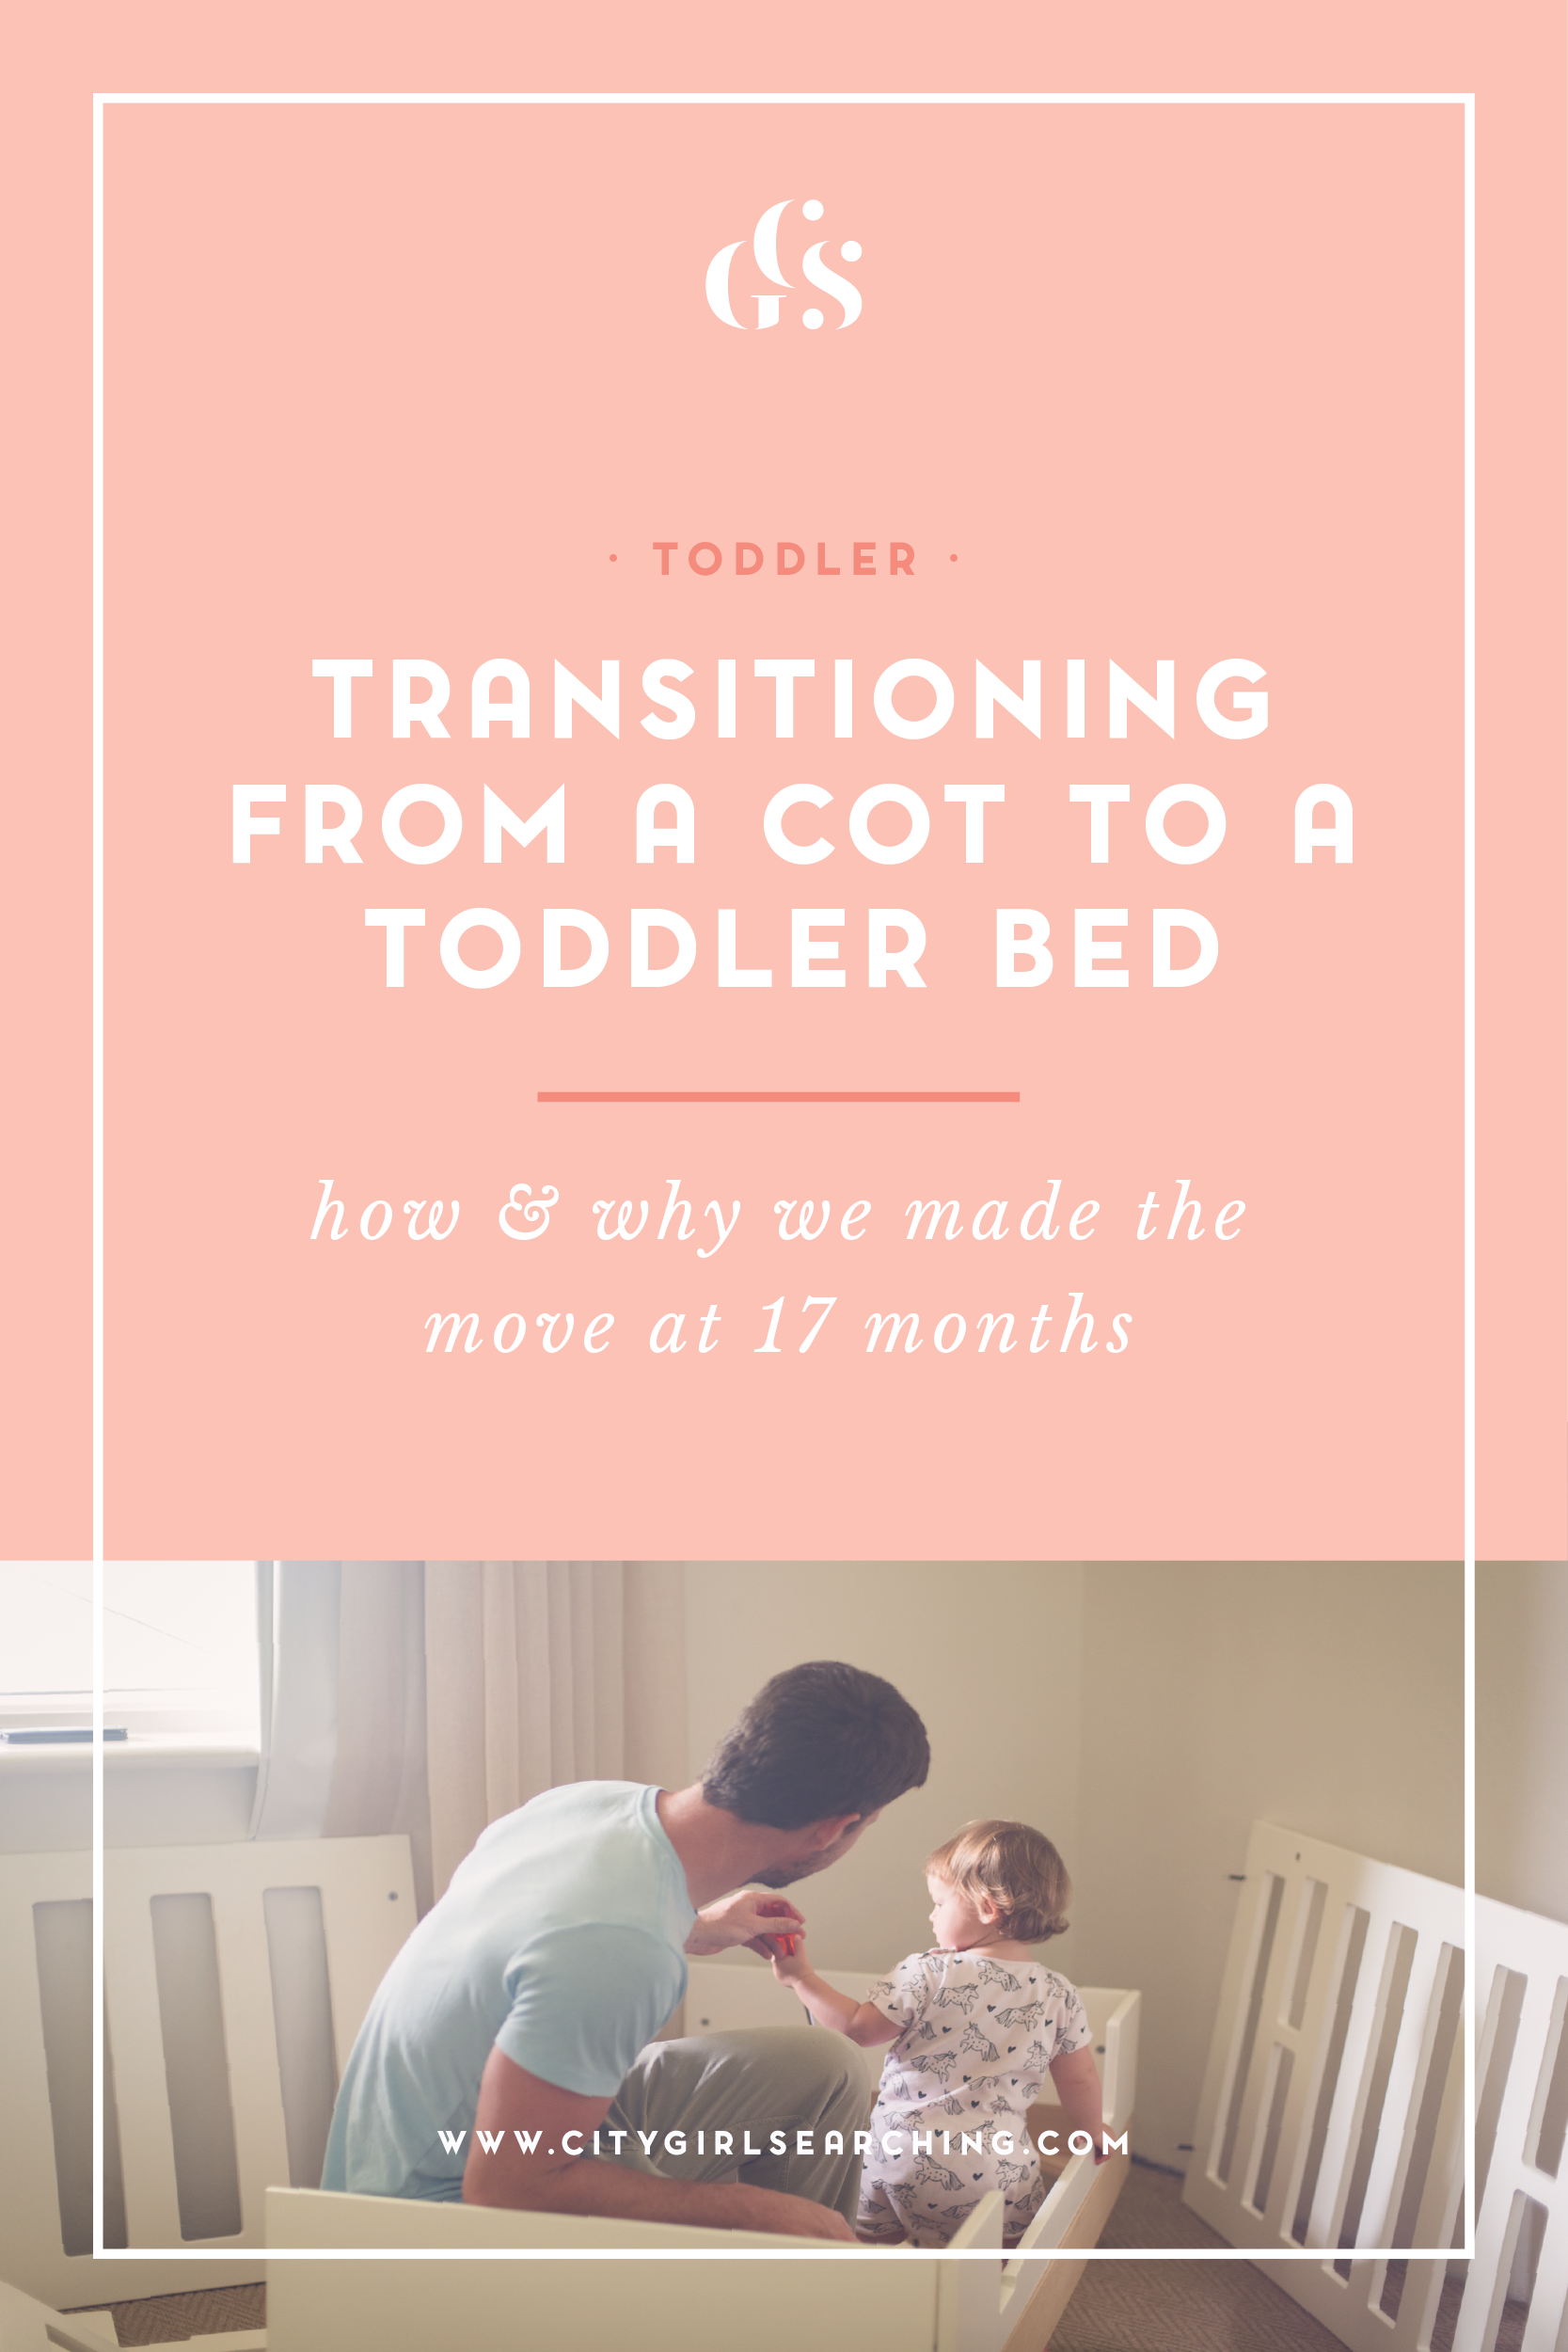 Transitioning From A Cot to a Toddler Bed at 17 Months Tips CityGirlSearching Blog-01.png